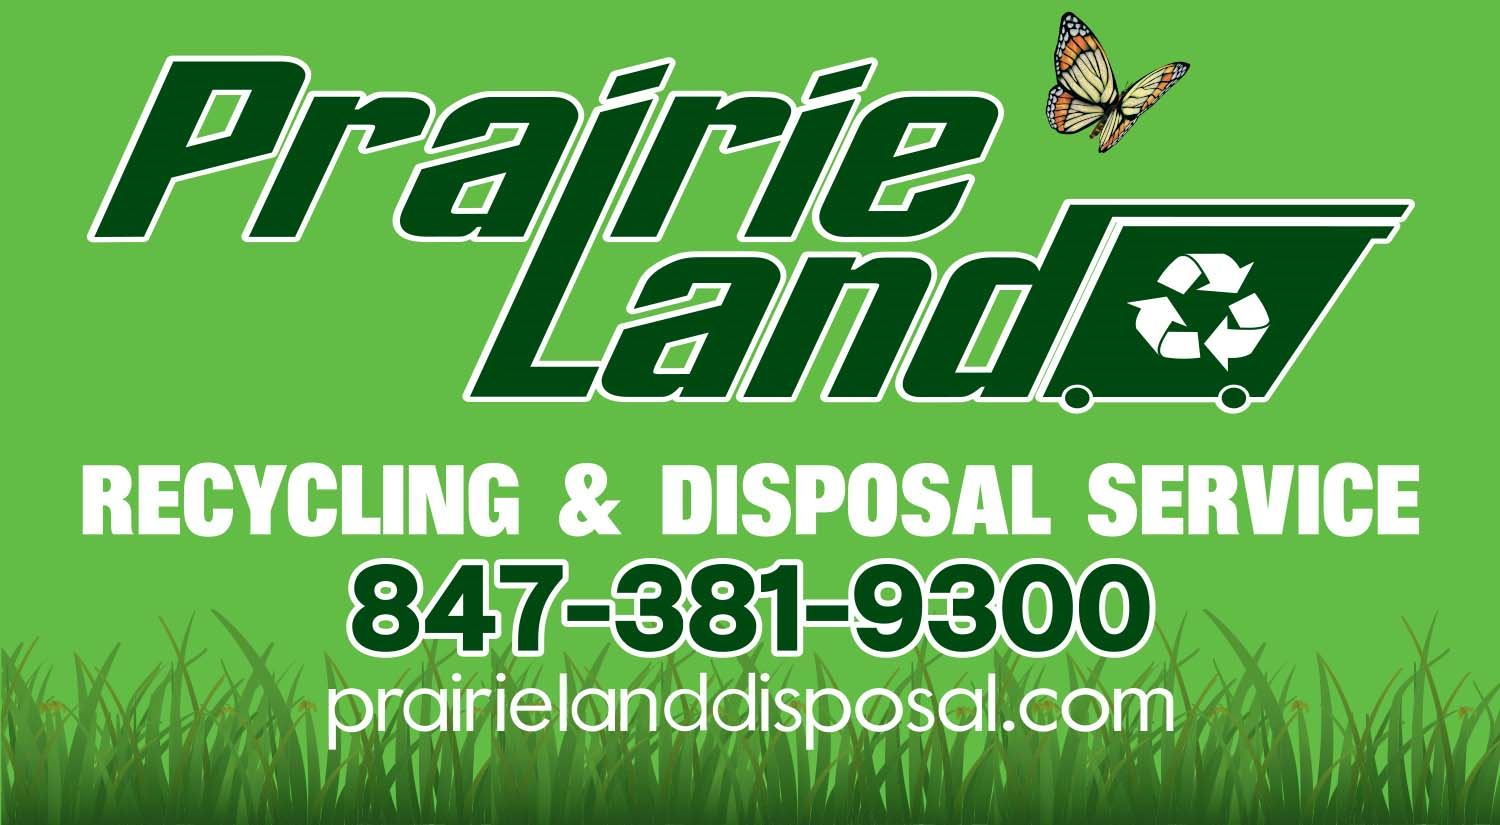 Prairieland Disposal Logo